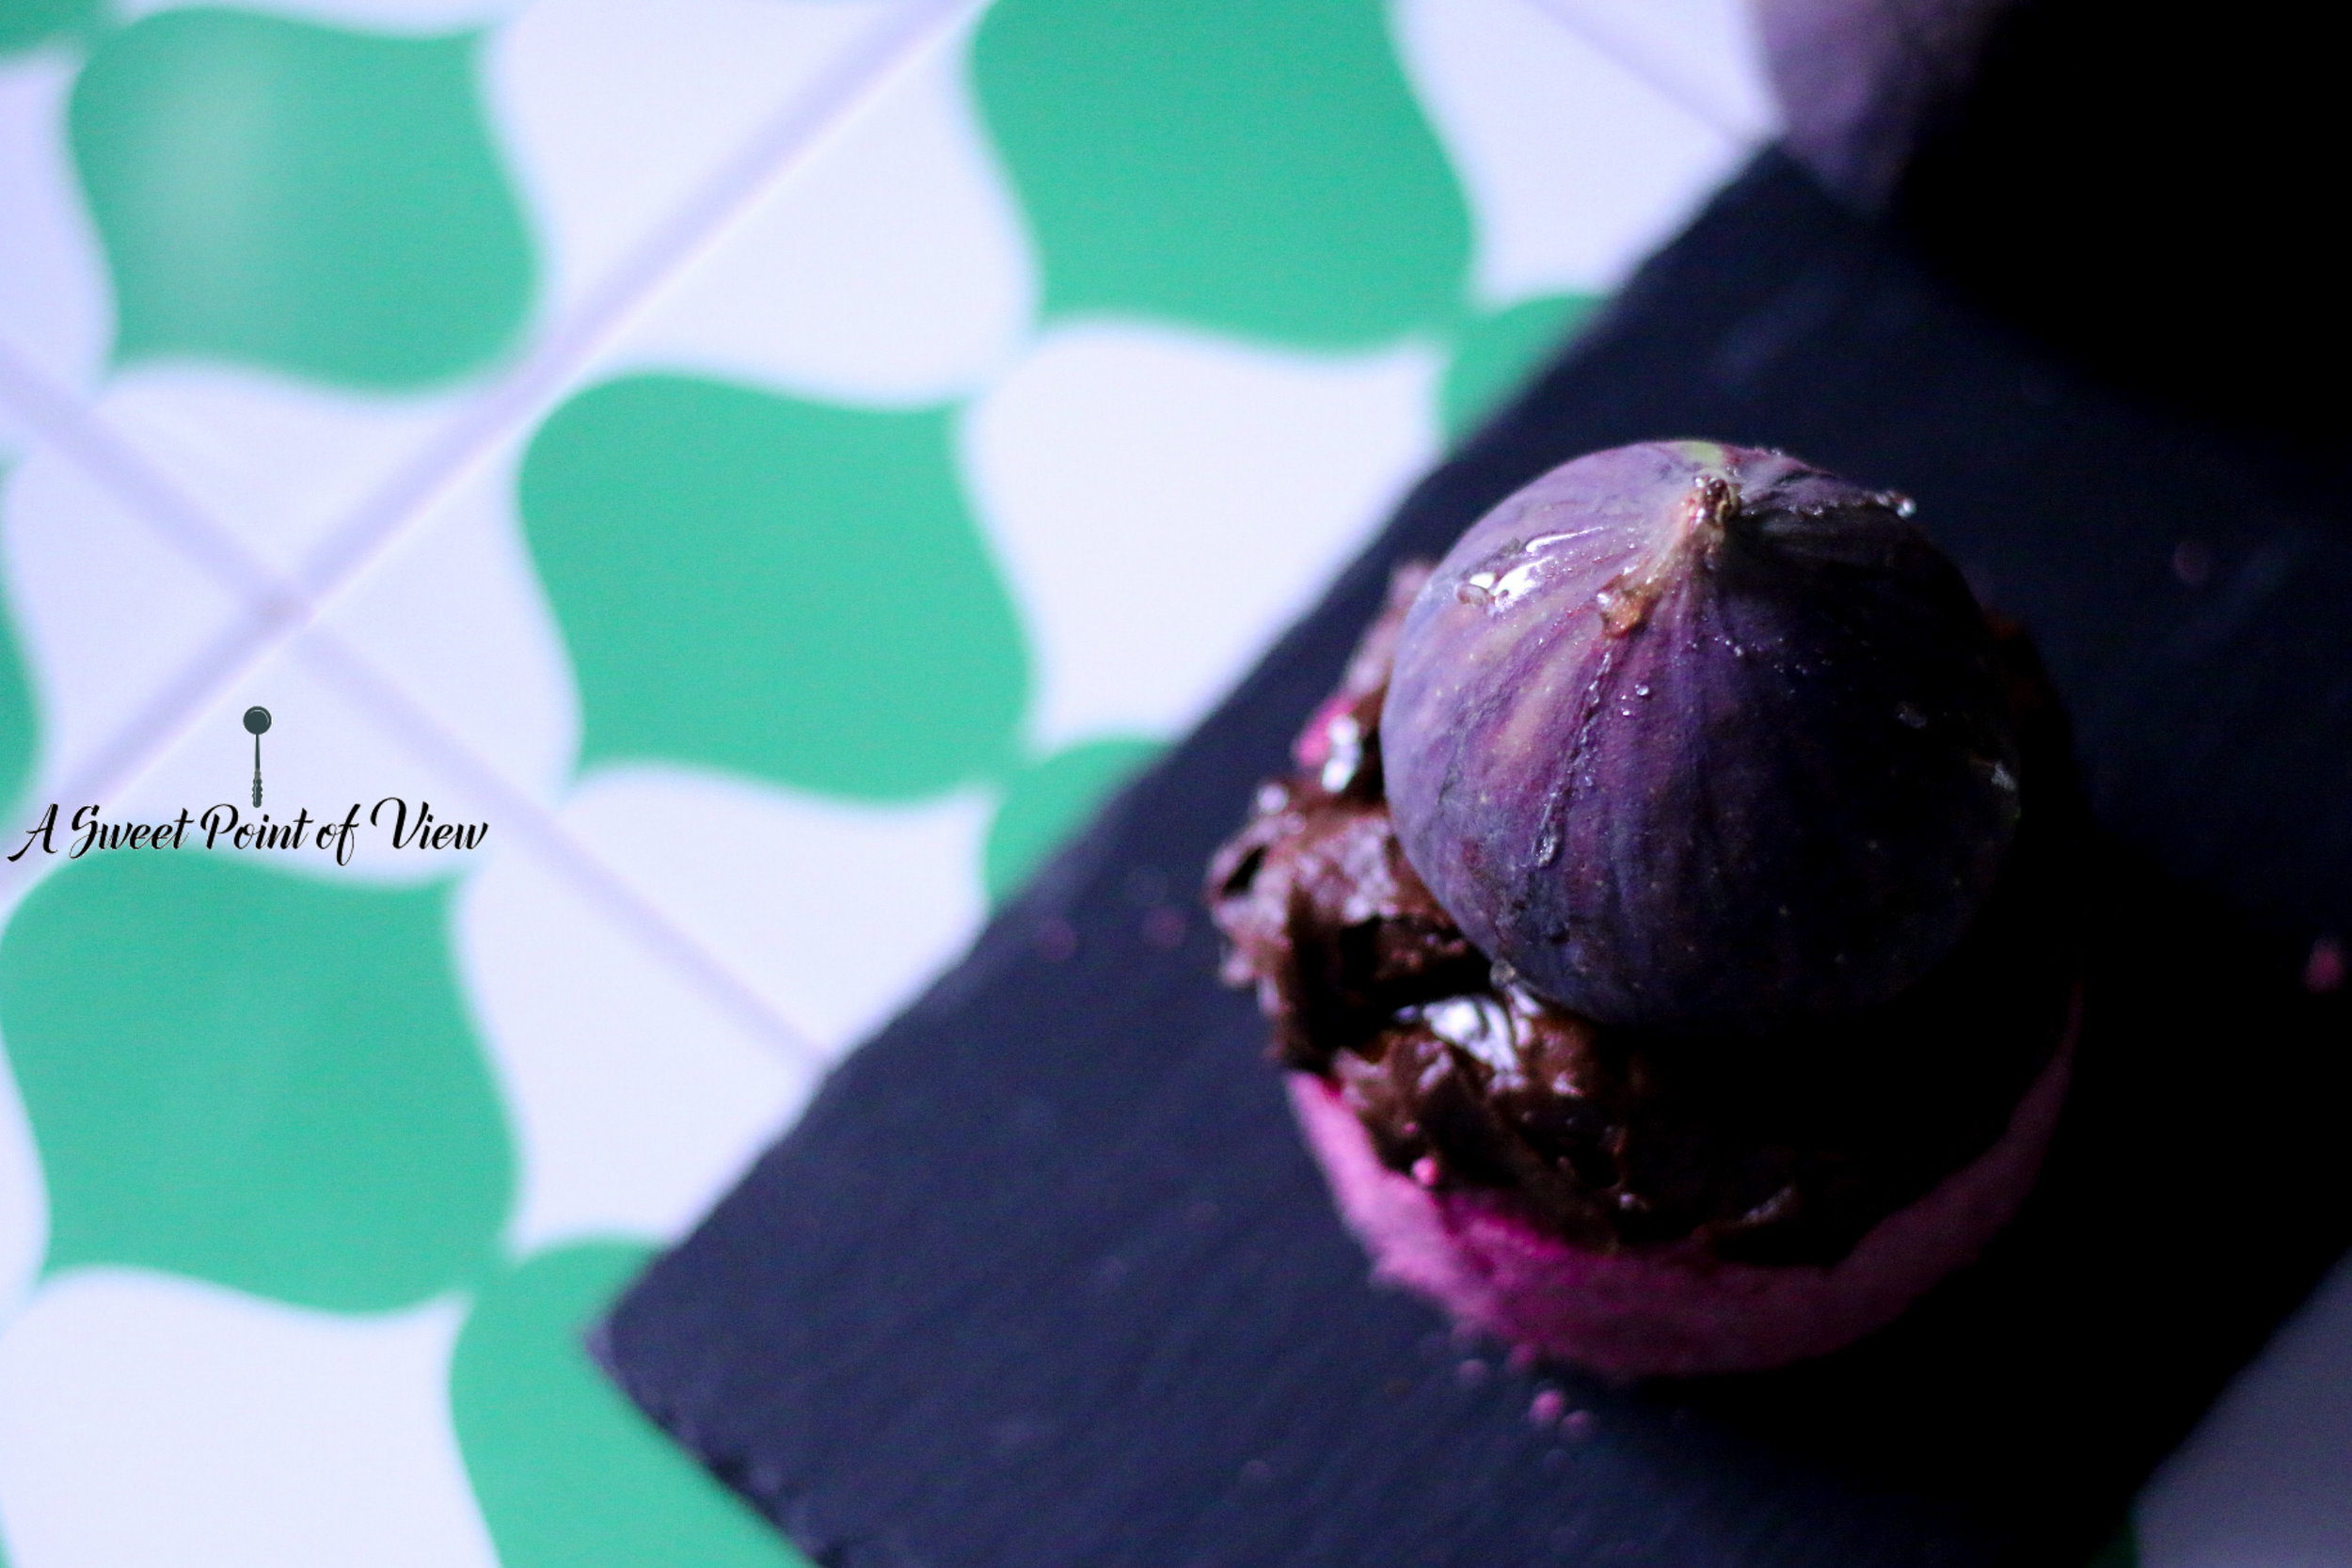 raw-fig-cakes-6-food-photography-melissa-ofoedu-photography-raw-food-a-sweet-point-of-view-1-von-1